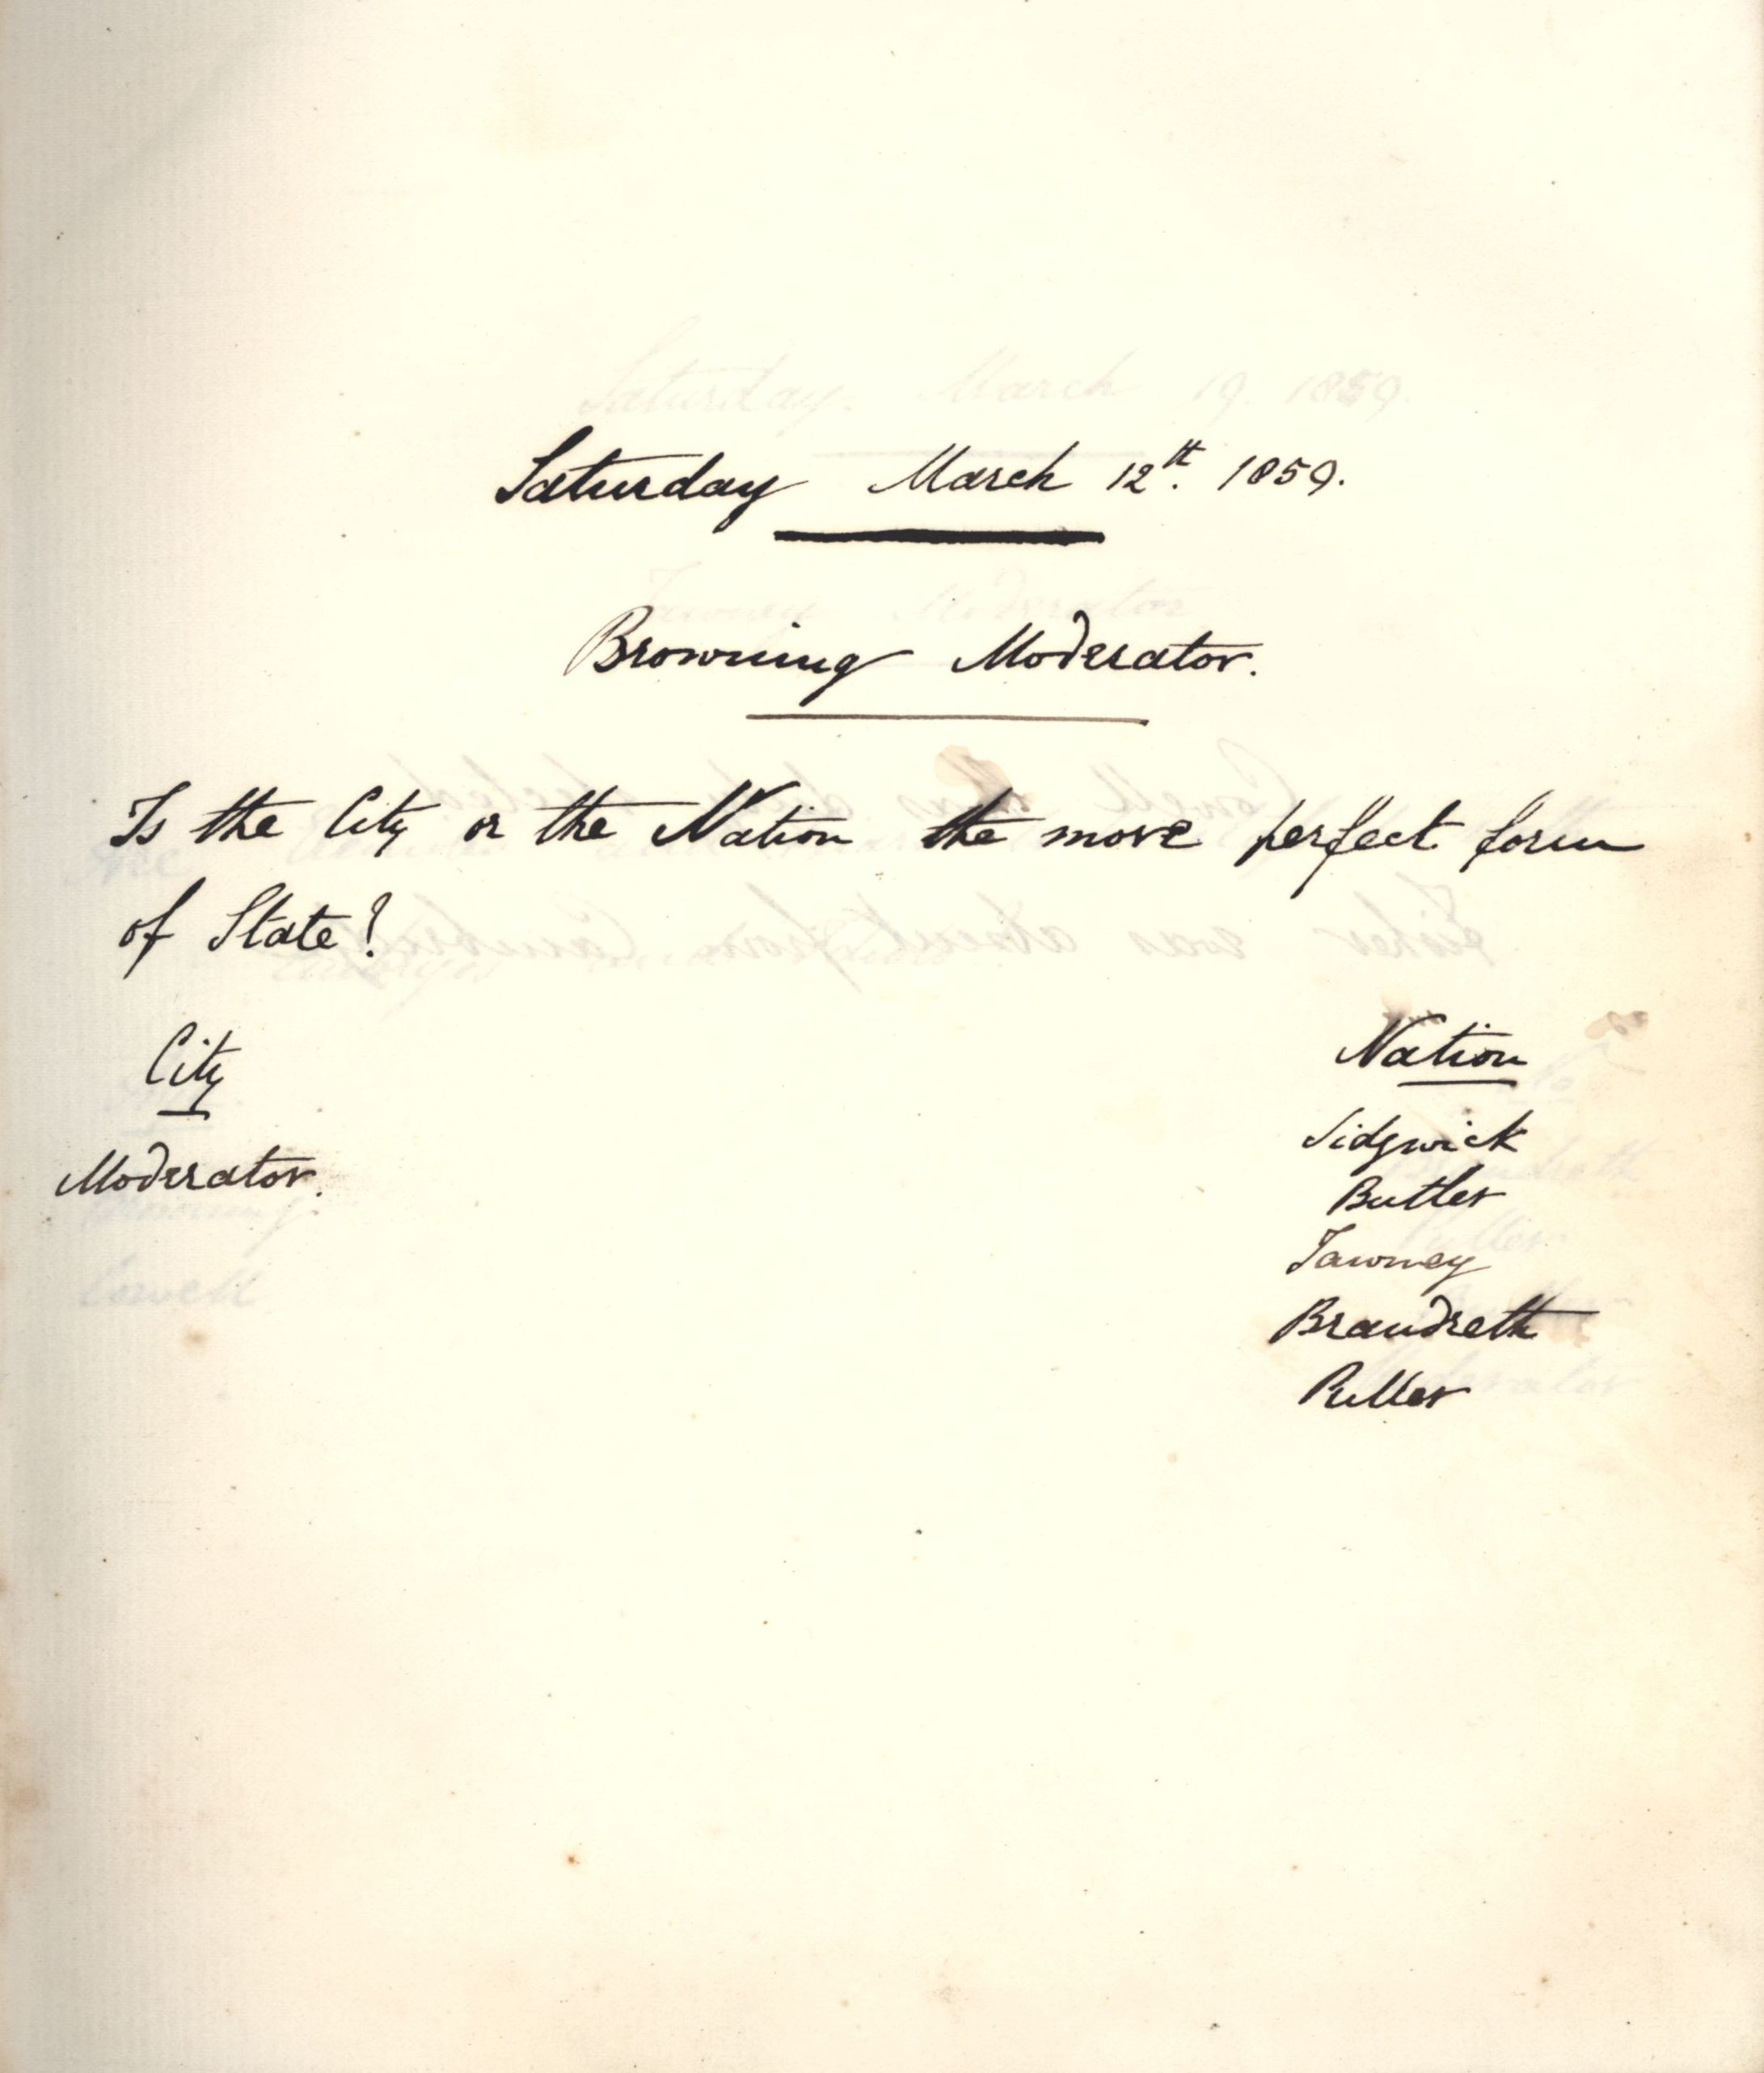 Minutes of a meeting in which Oscar Browning asked 'Is the City or the State the more perfect form of State?' [KCAS/39/1/5, 12 March 1859]